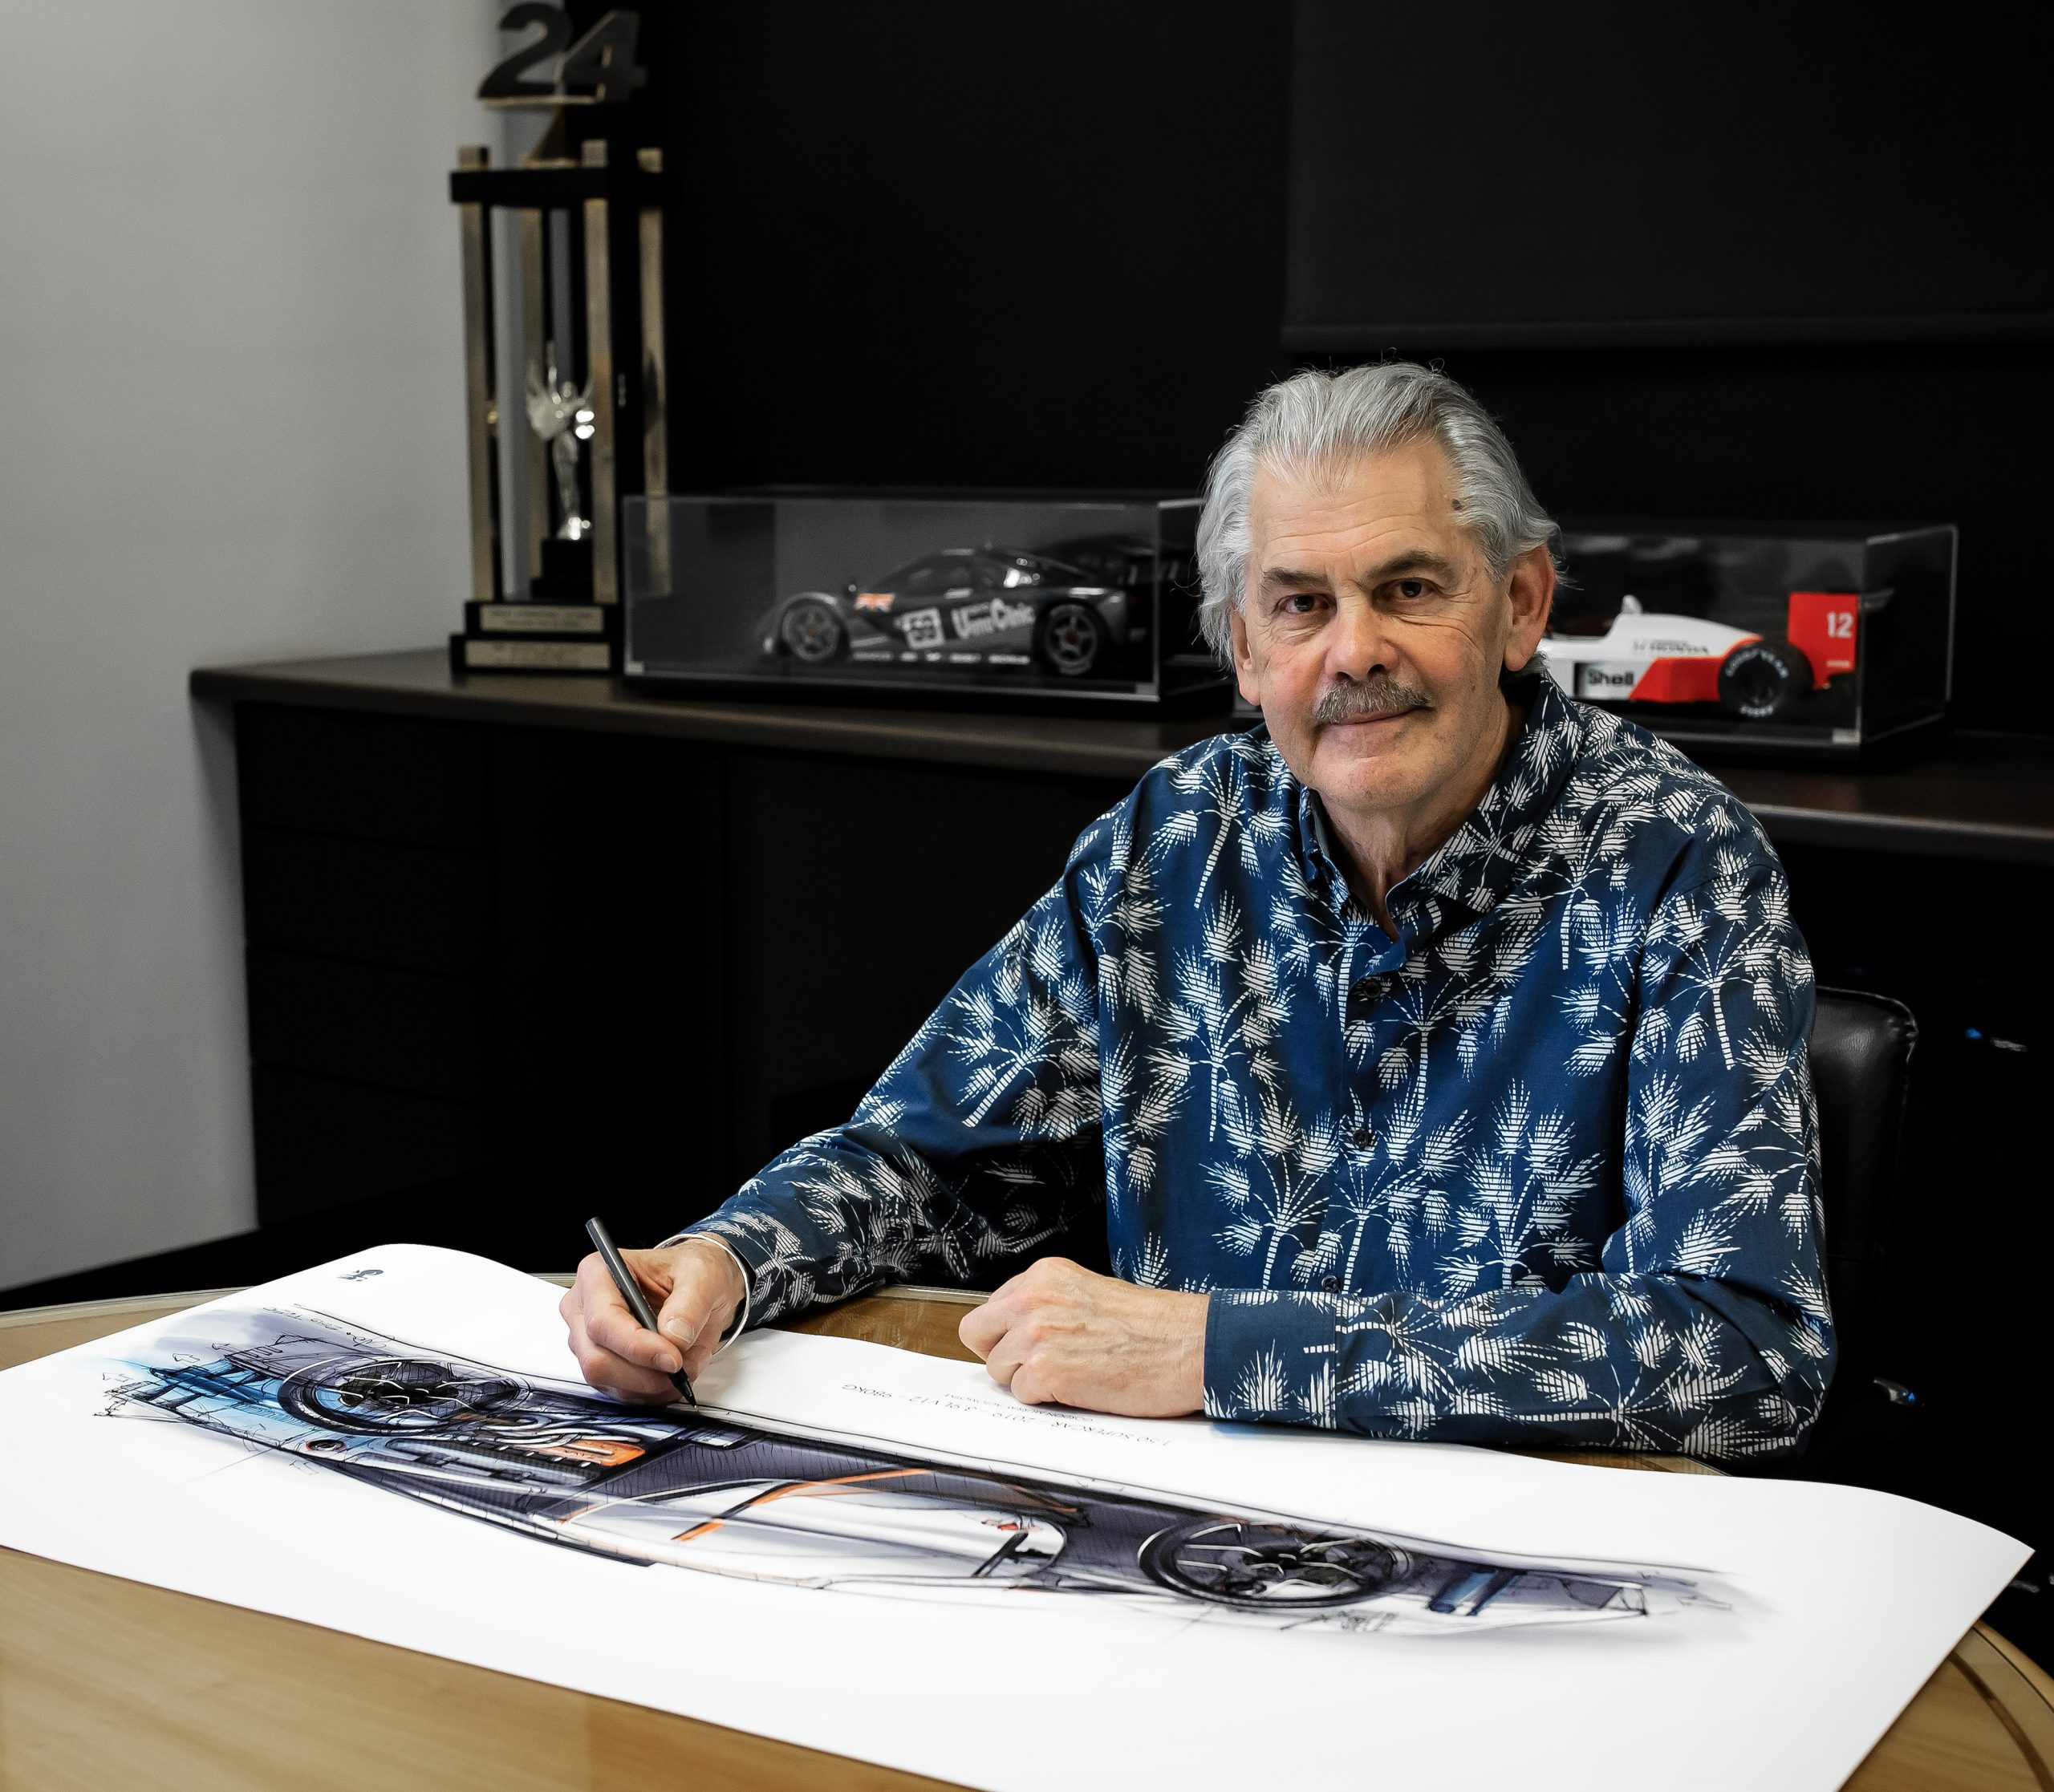 Mclaren F1 News Articles Stories Trends For Today: Gordon Murray Tells Hagerty Why His New T.50 Hypercar Will